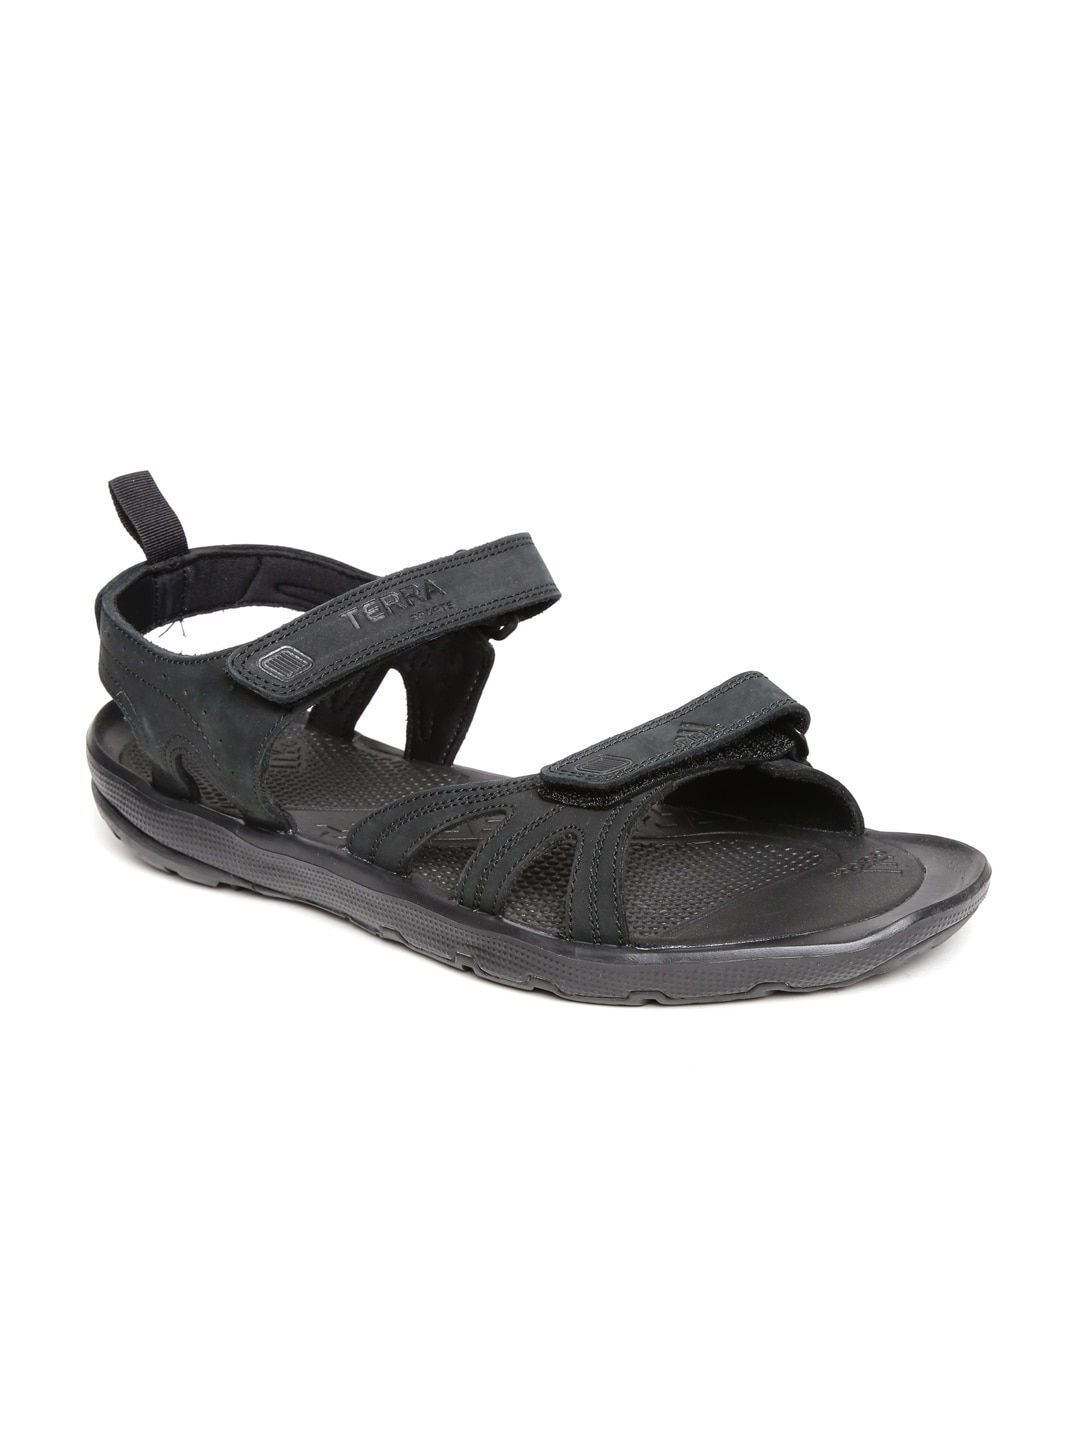 078b91e54911ae Buy adidas sandals mens brown   OFF68% Discounted